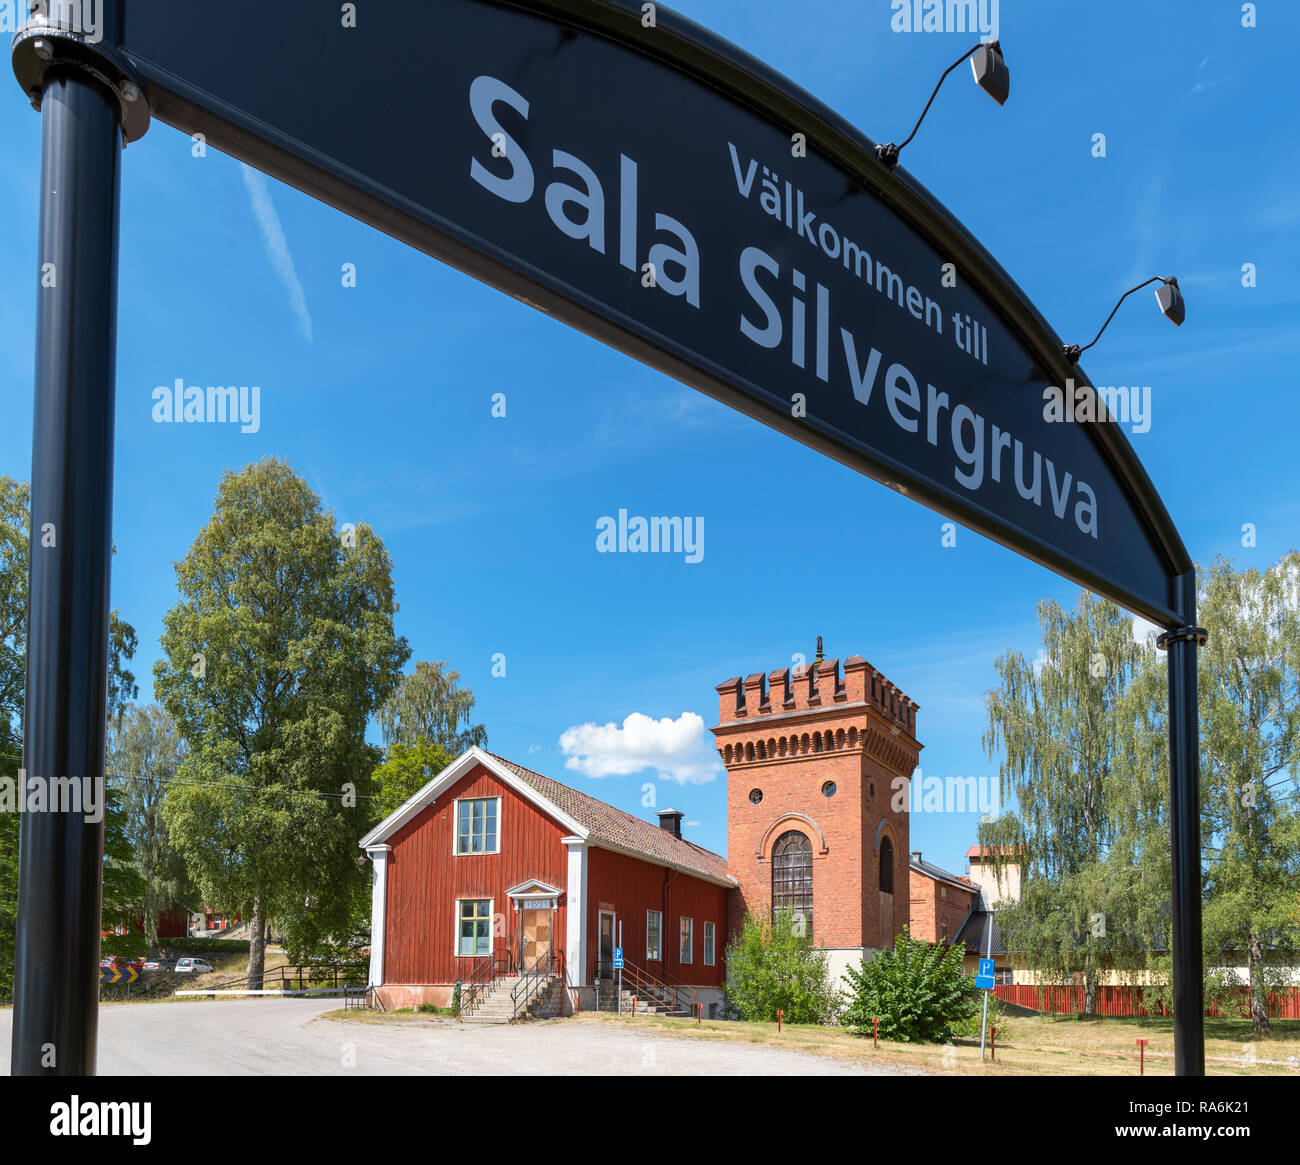 Entrance to the Sala Silver Mine (Sala silvergruva), an open air museum in Sala, Västmanland, Sweden - Stock Image